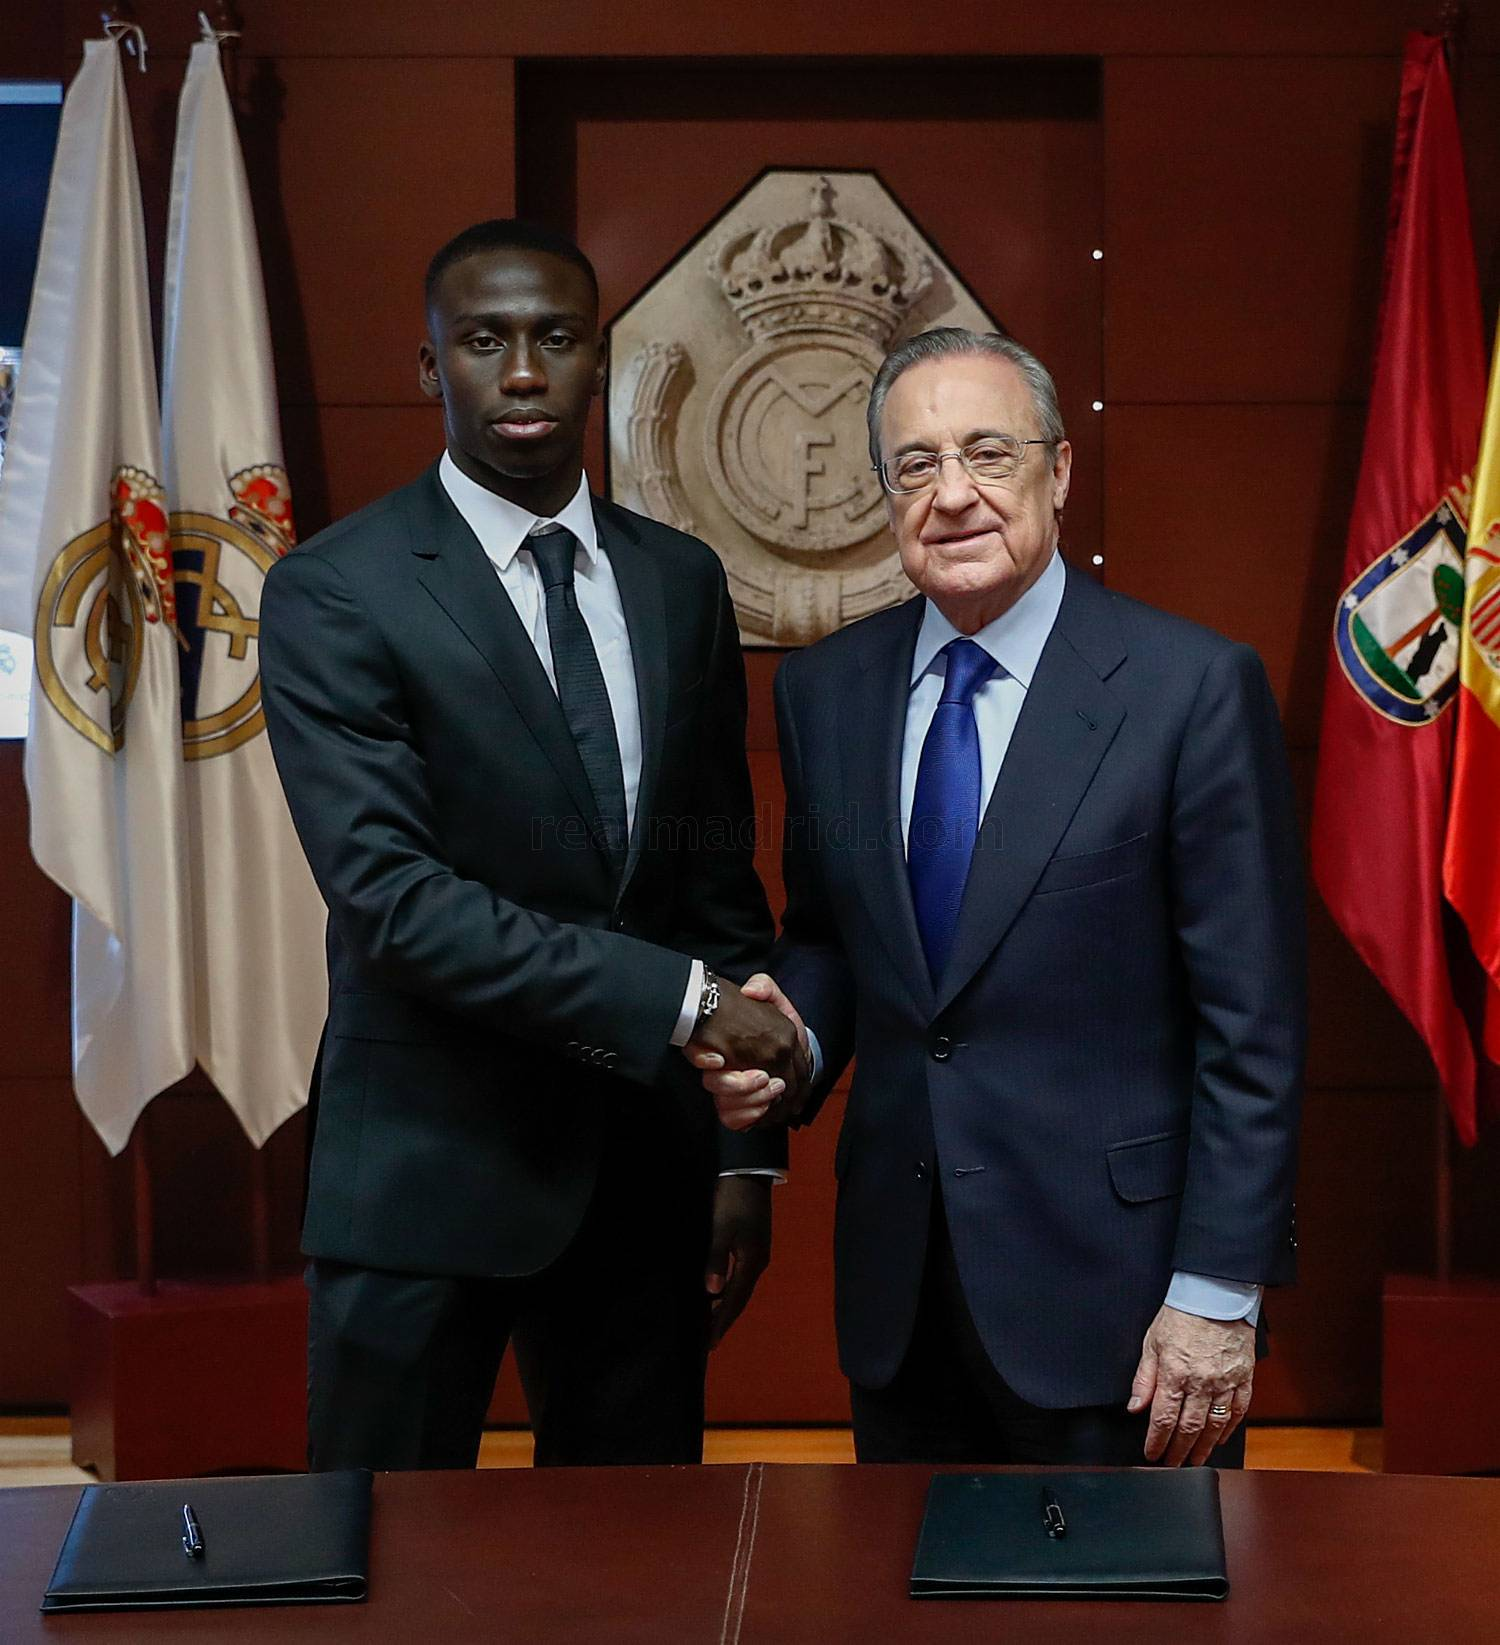 ¿Cuánto mide Ferland Mendy? - Real height _he19320_20190619013555